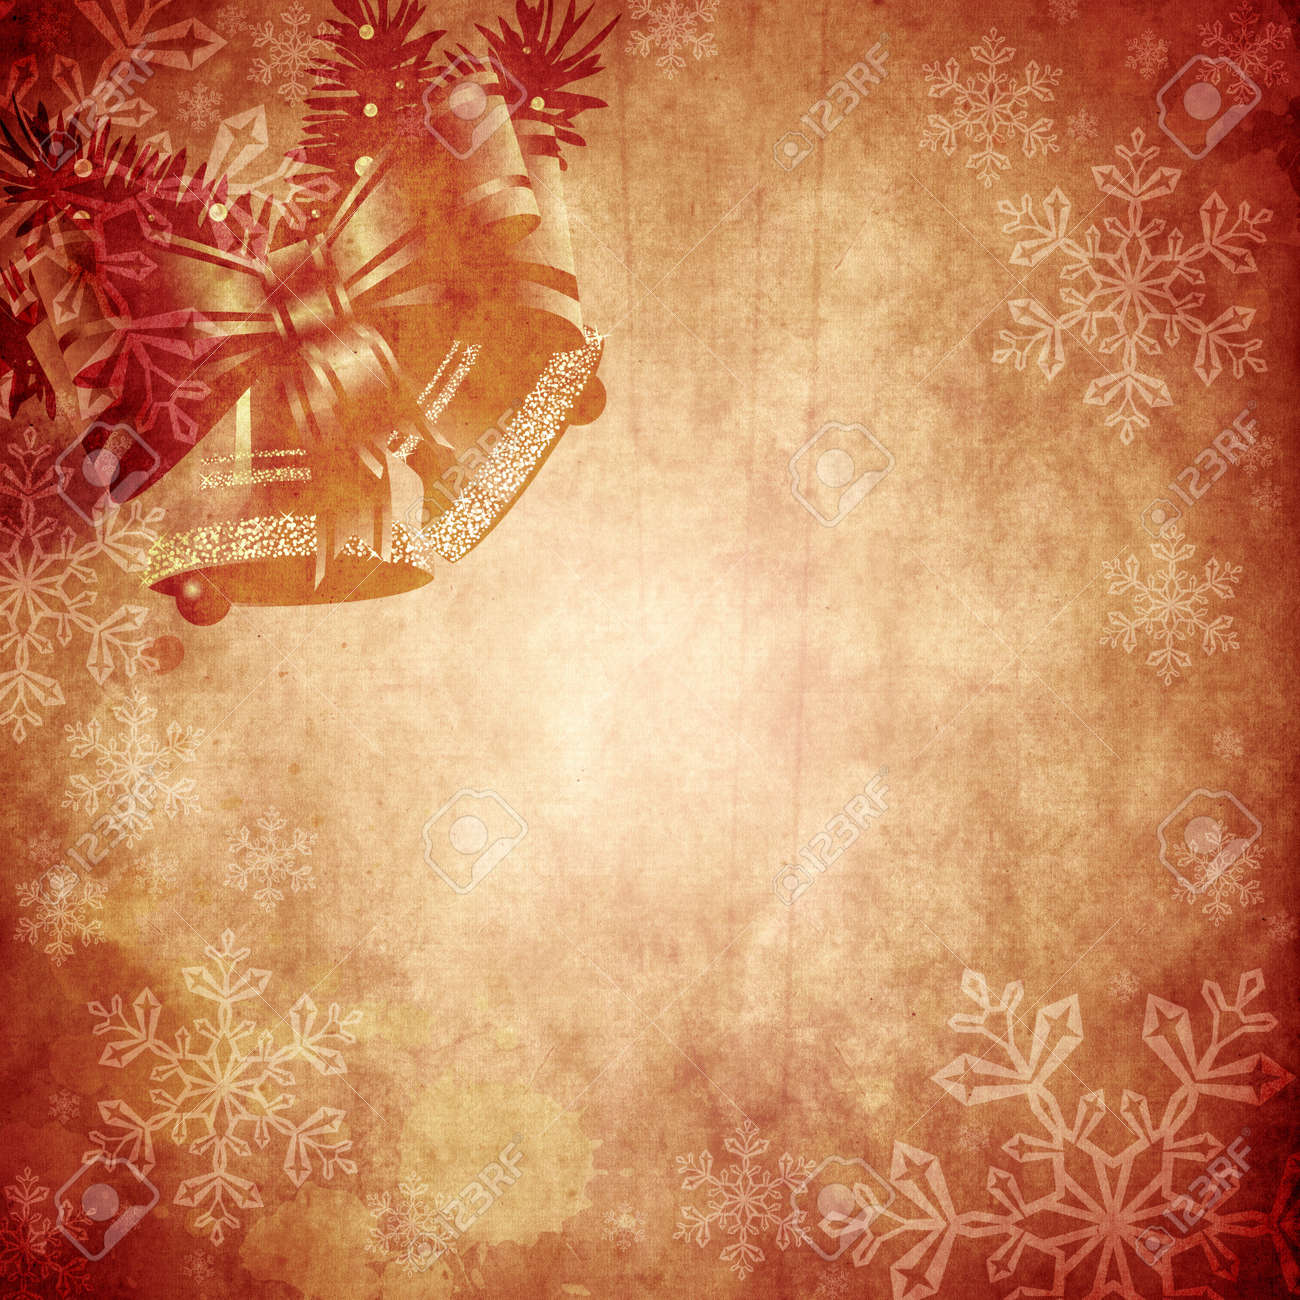 Vintage Christmas Background Design With Copy Space For Your ...